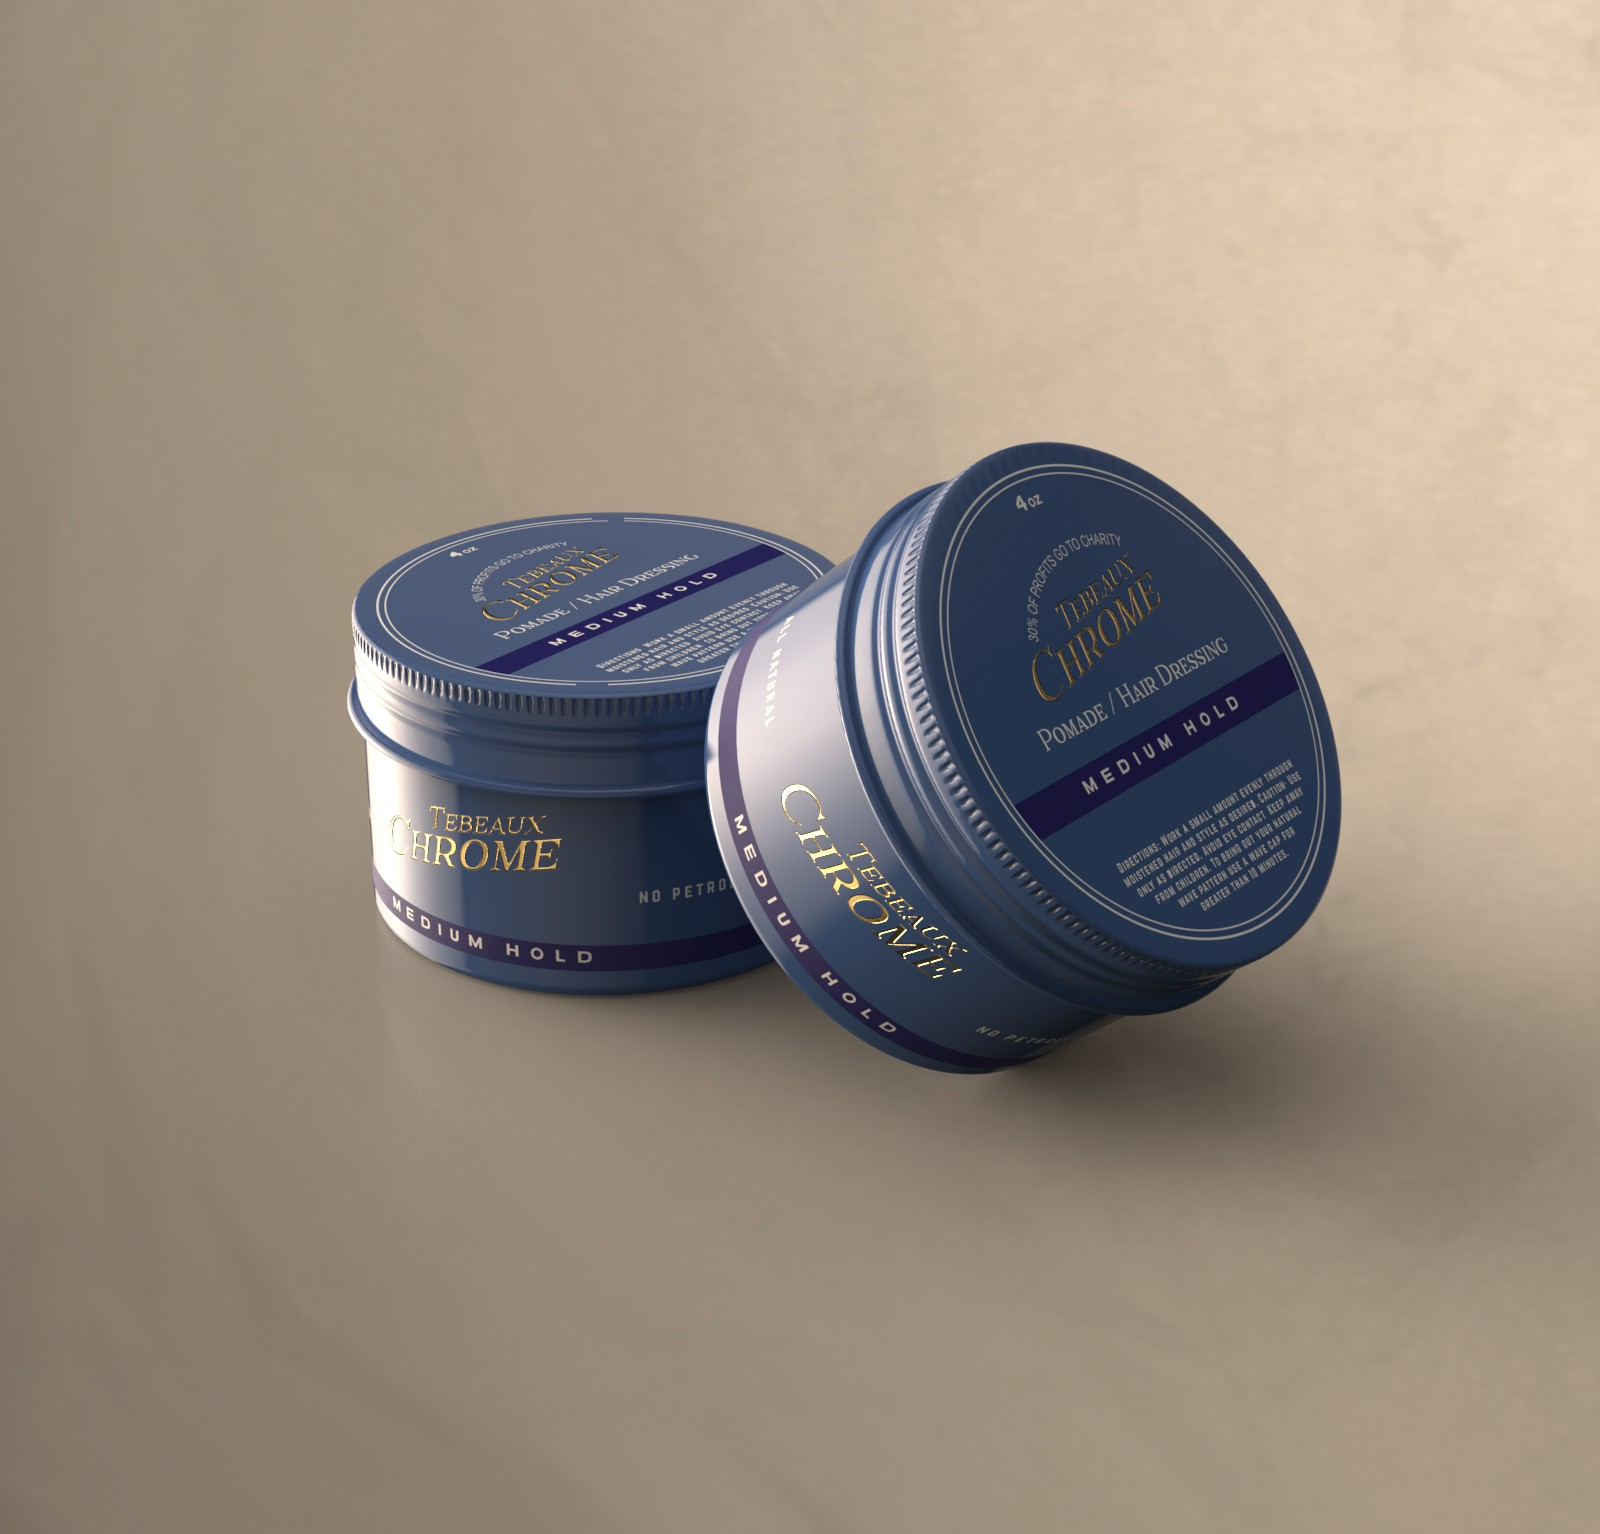 Design a pomade/hair dressing container